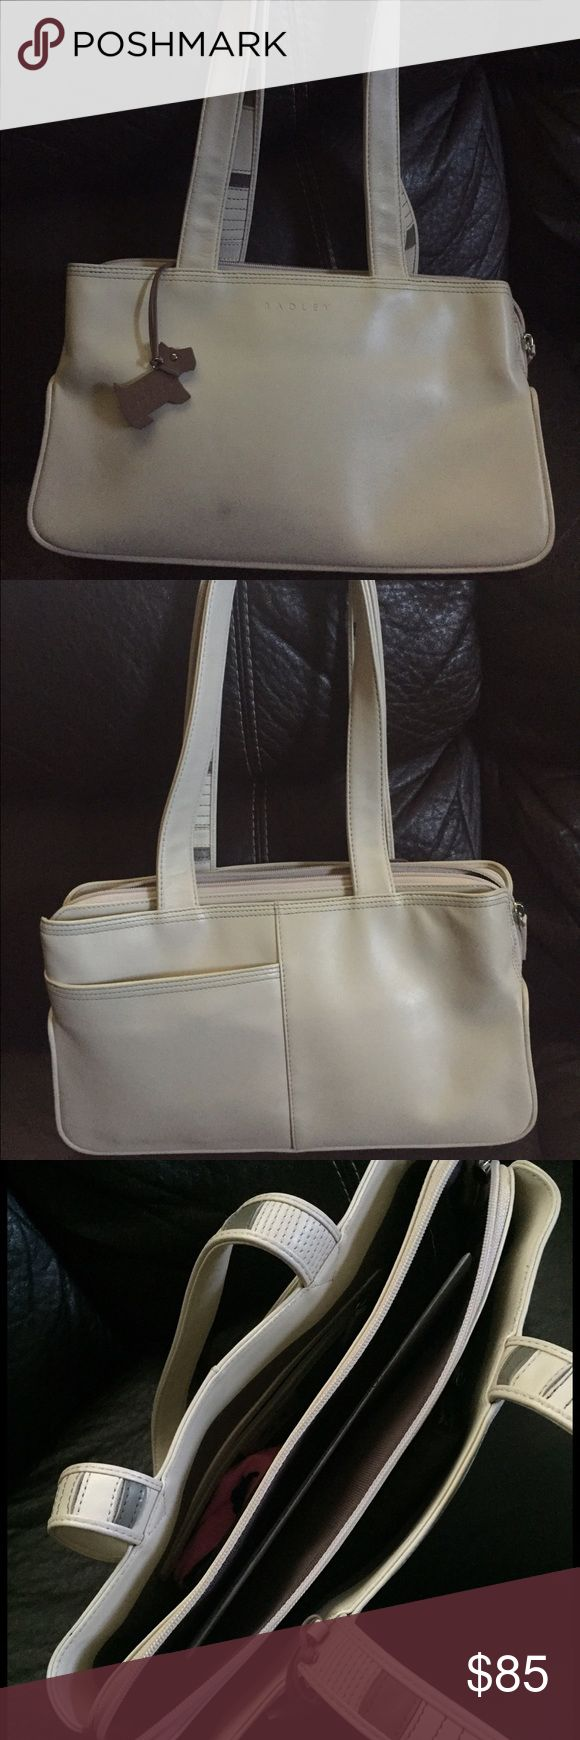 Radley purse Good condition besides a small black stain Bags Shoulder Bags